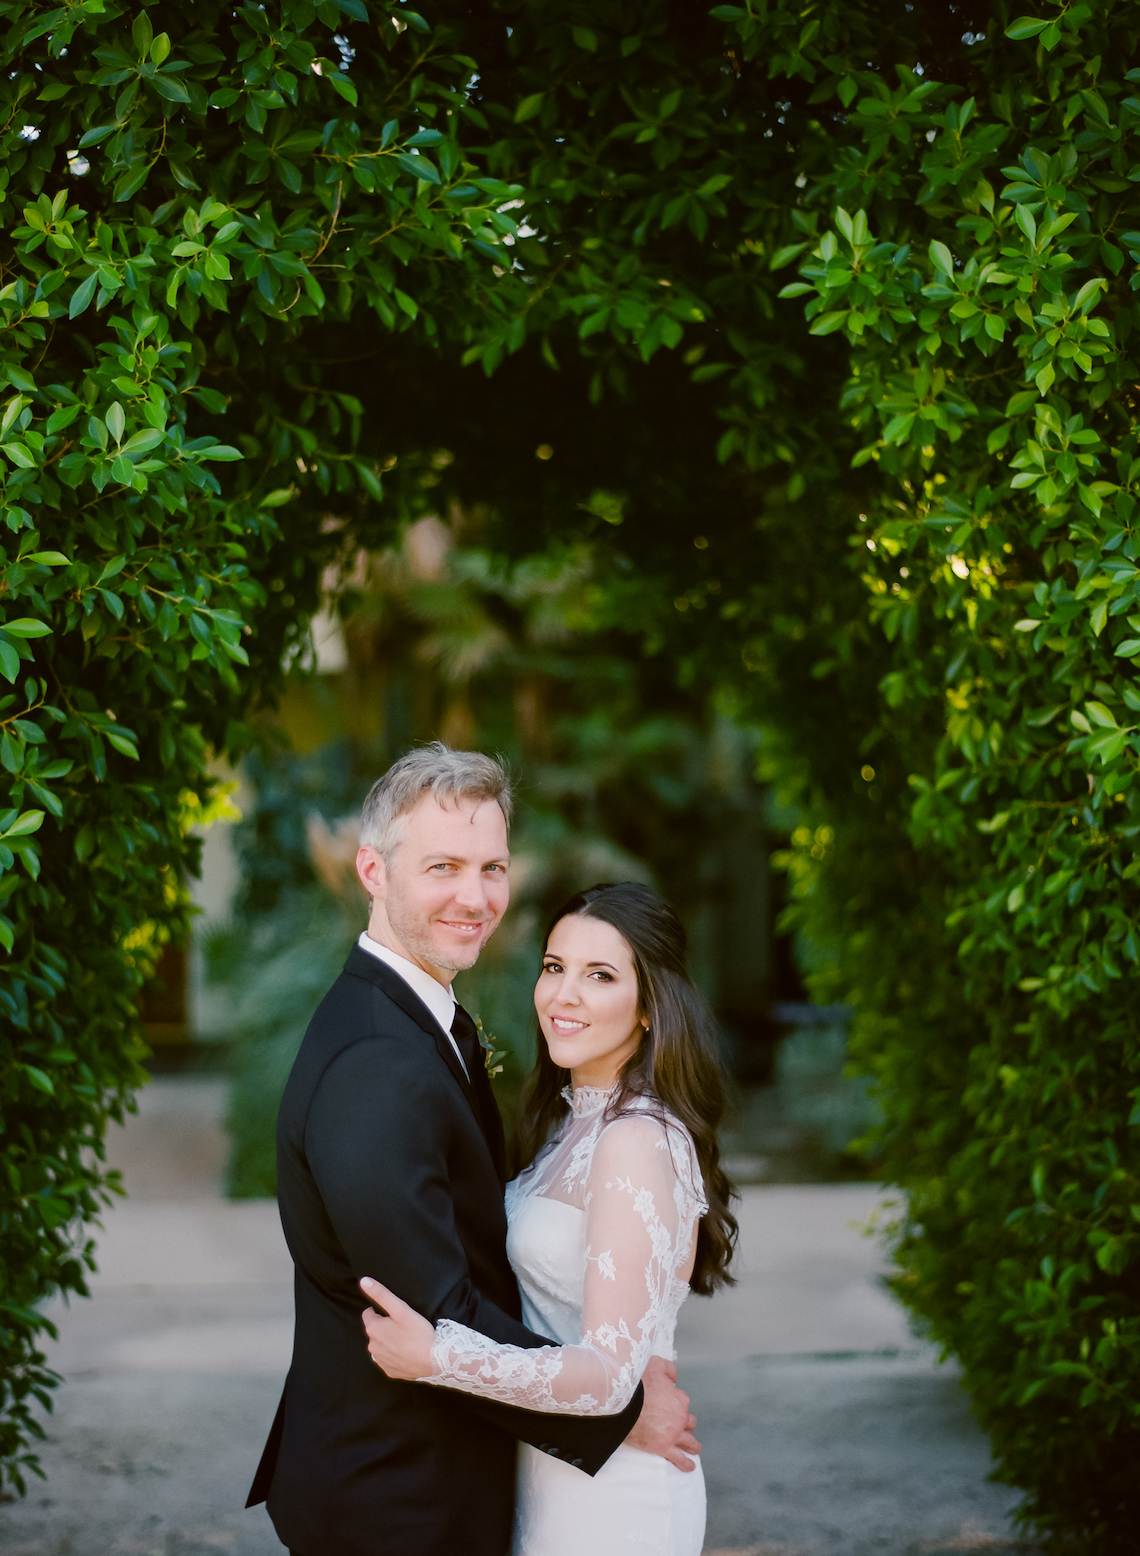 Palm Springs Wedding by Amy and Stuart Photography and Oui Events 49